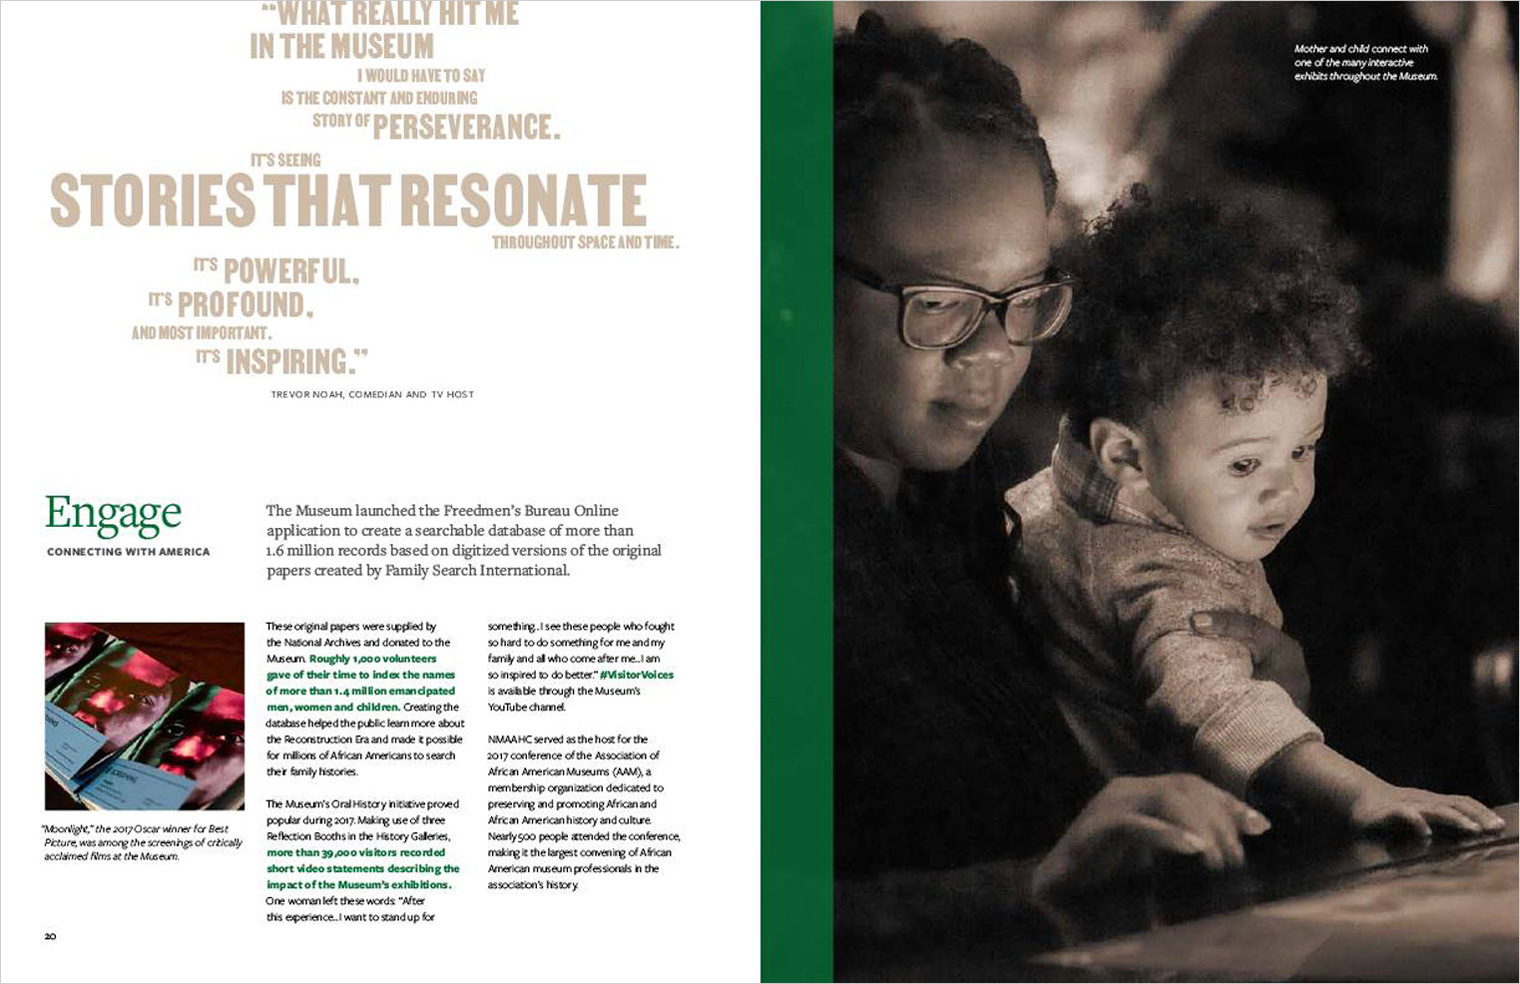 2018 NMAAHC Annual Report